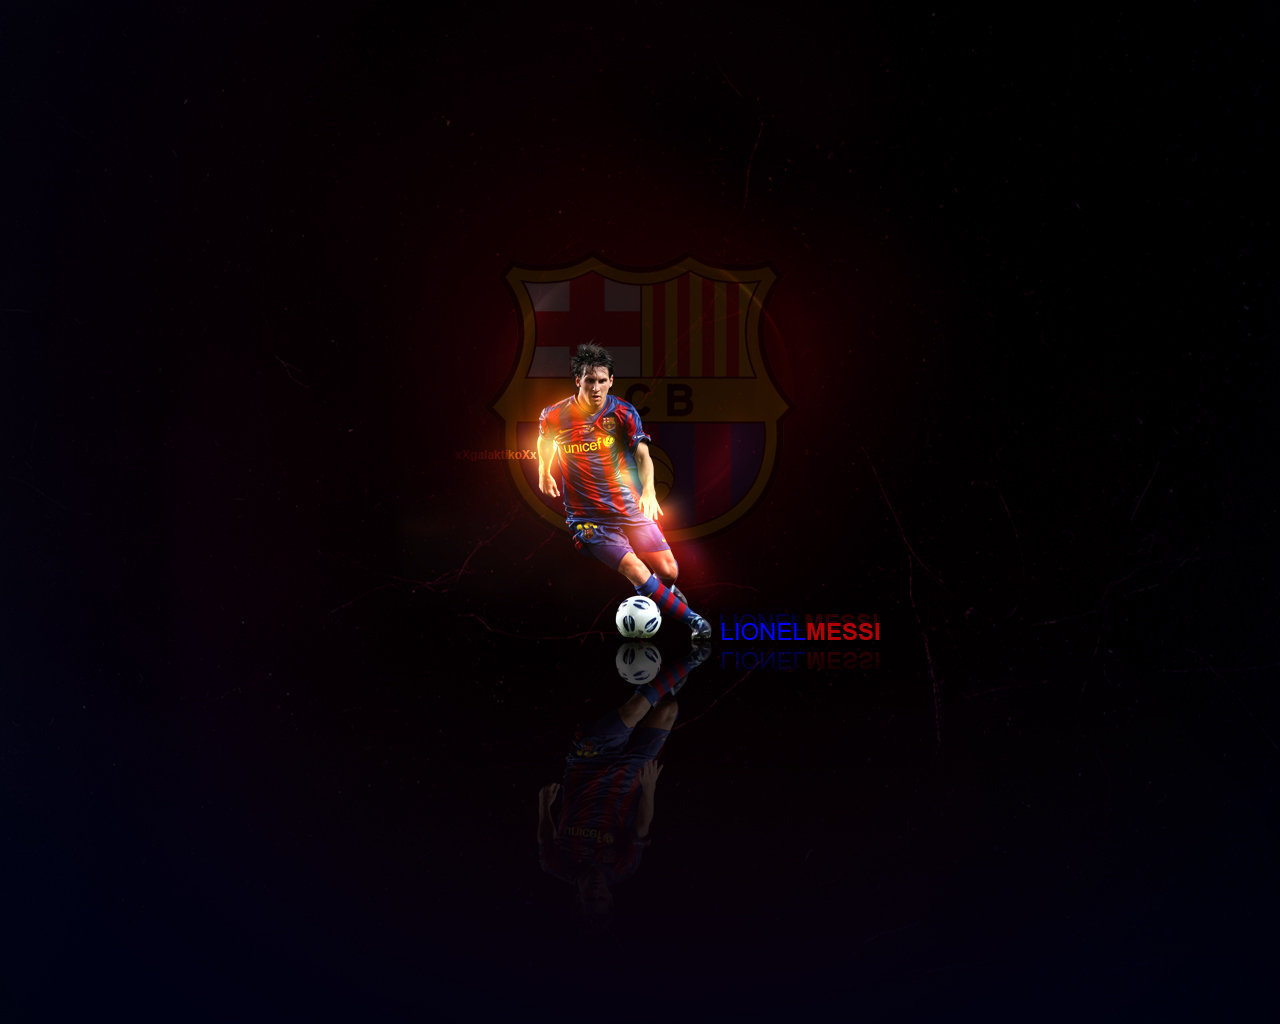 Steve Darrell HD Wallpapers Lionel Andres Messi Wallpaper Hd Lilzeu Tattoo De Picture